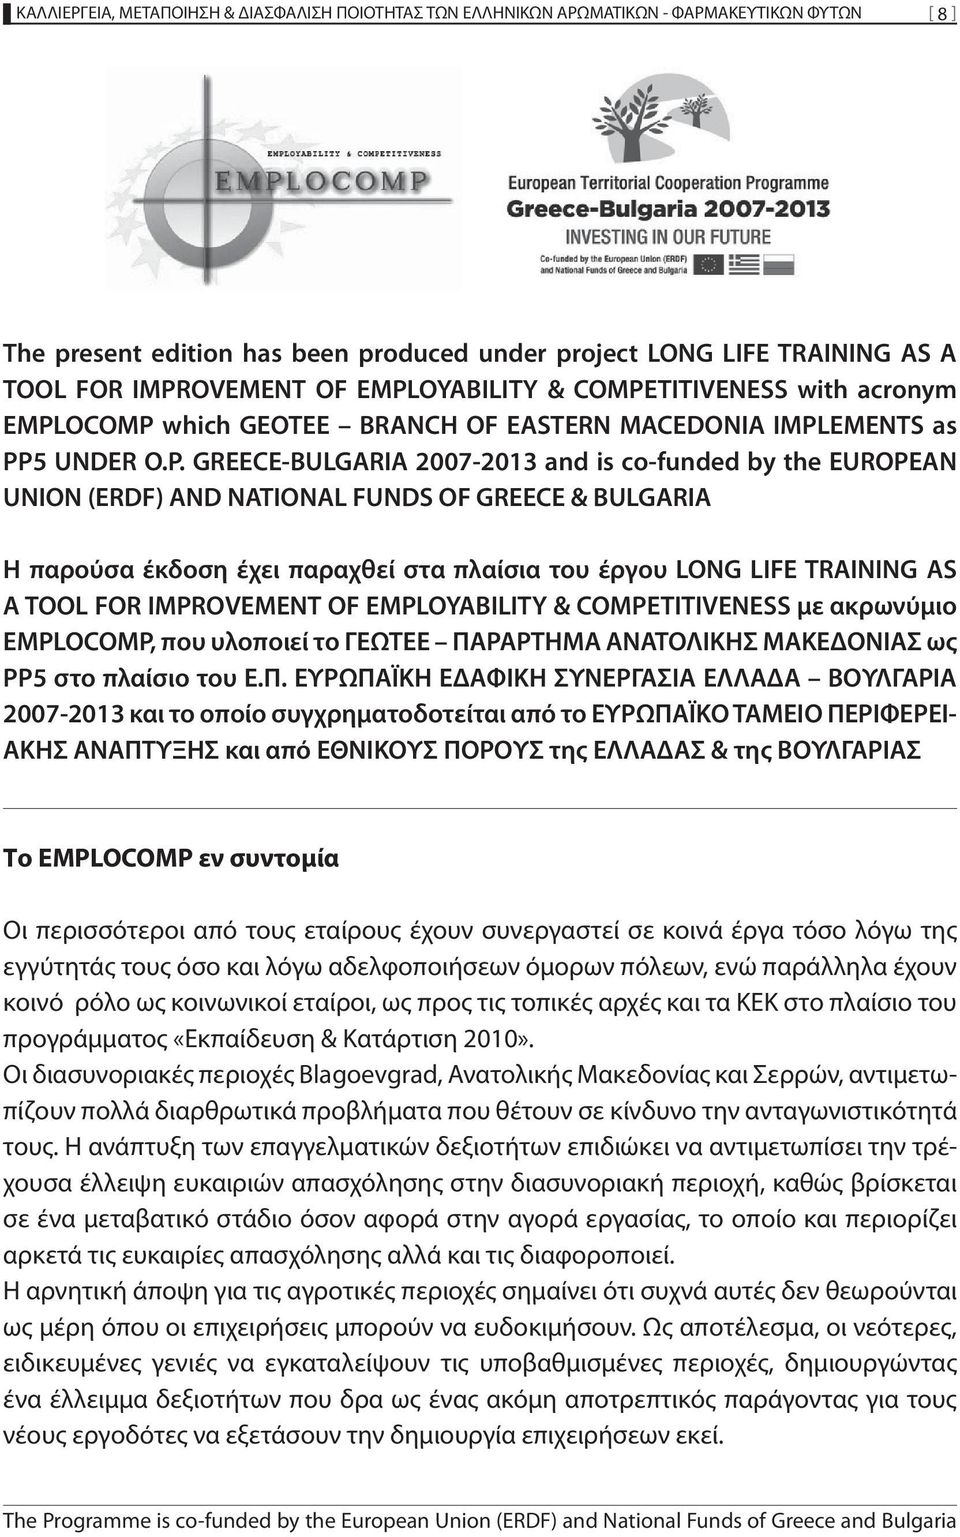 AND NATIONAL FUNDS OF GREECE & BULGARIA Η παρούσα έκδοση έχει παραχθεί στα πλαίσια του έργου LONG LIFE TRAINING AS A TOOL FOR IMPROVEMENT OF EMPLOYABILITY & COMPETITIVENESS με ακρωνύμιο EMPLOCOMP,